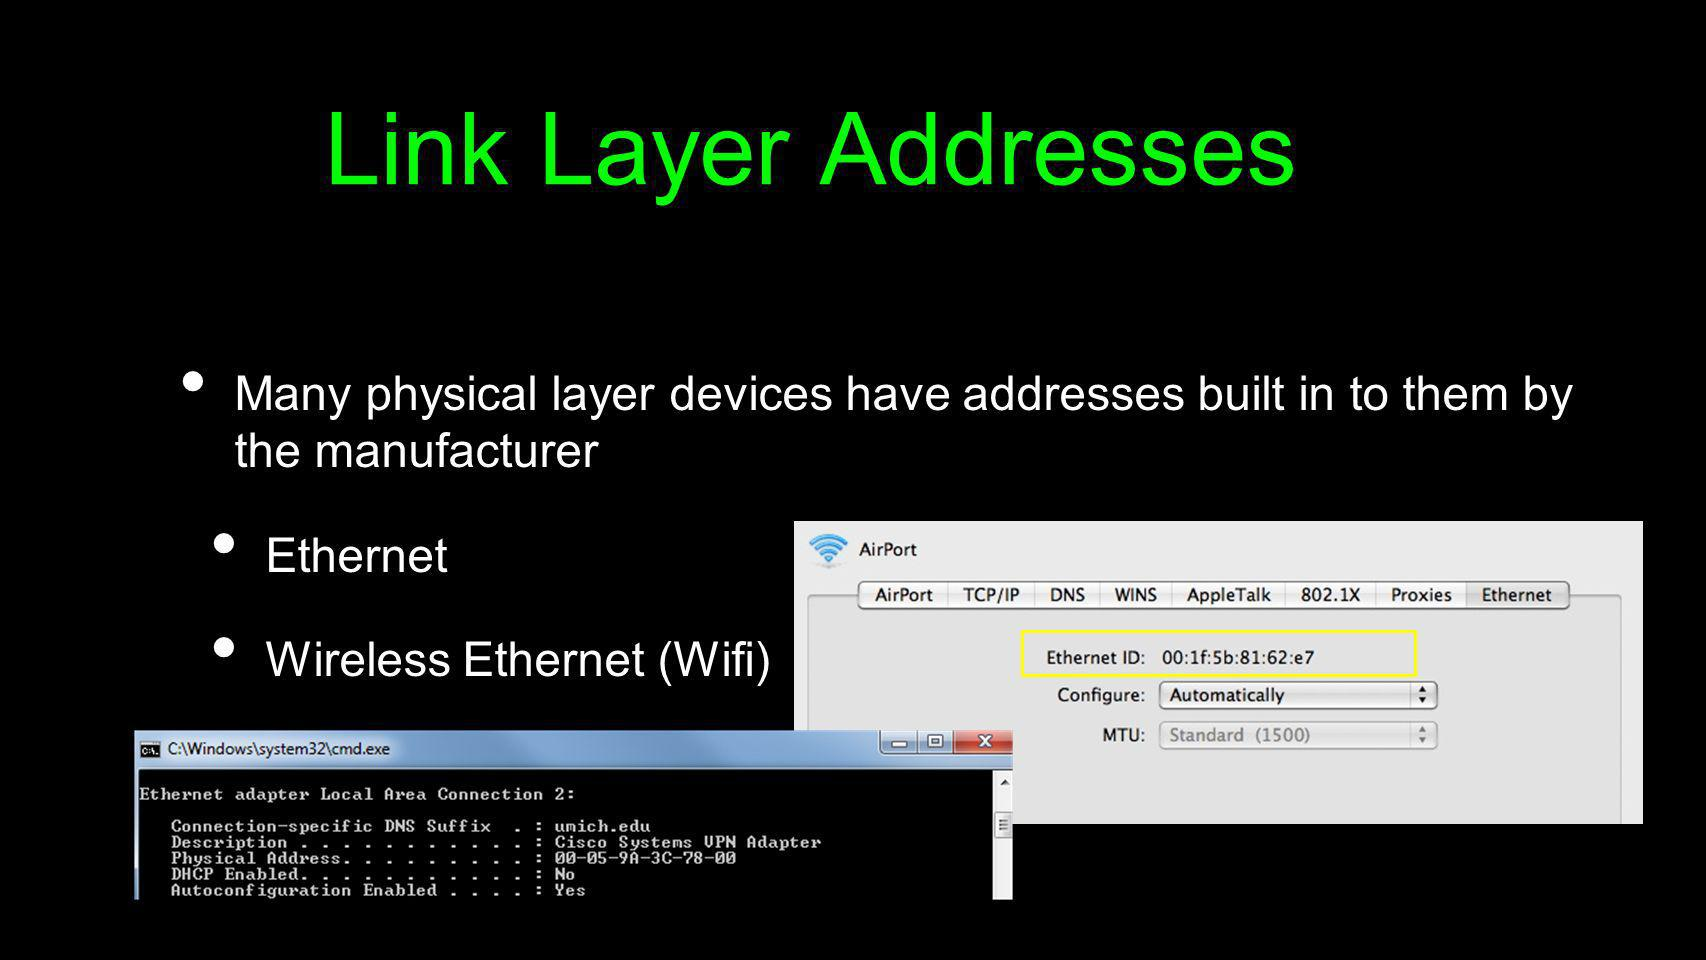 Link Layer Addresses Many physical layer devices have addresses built in to them by the manufacturer.